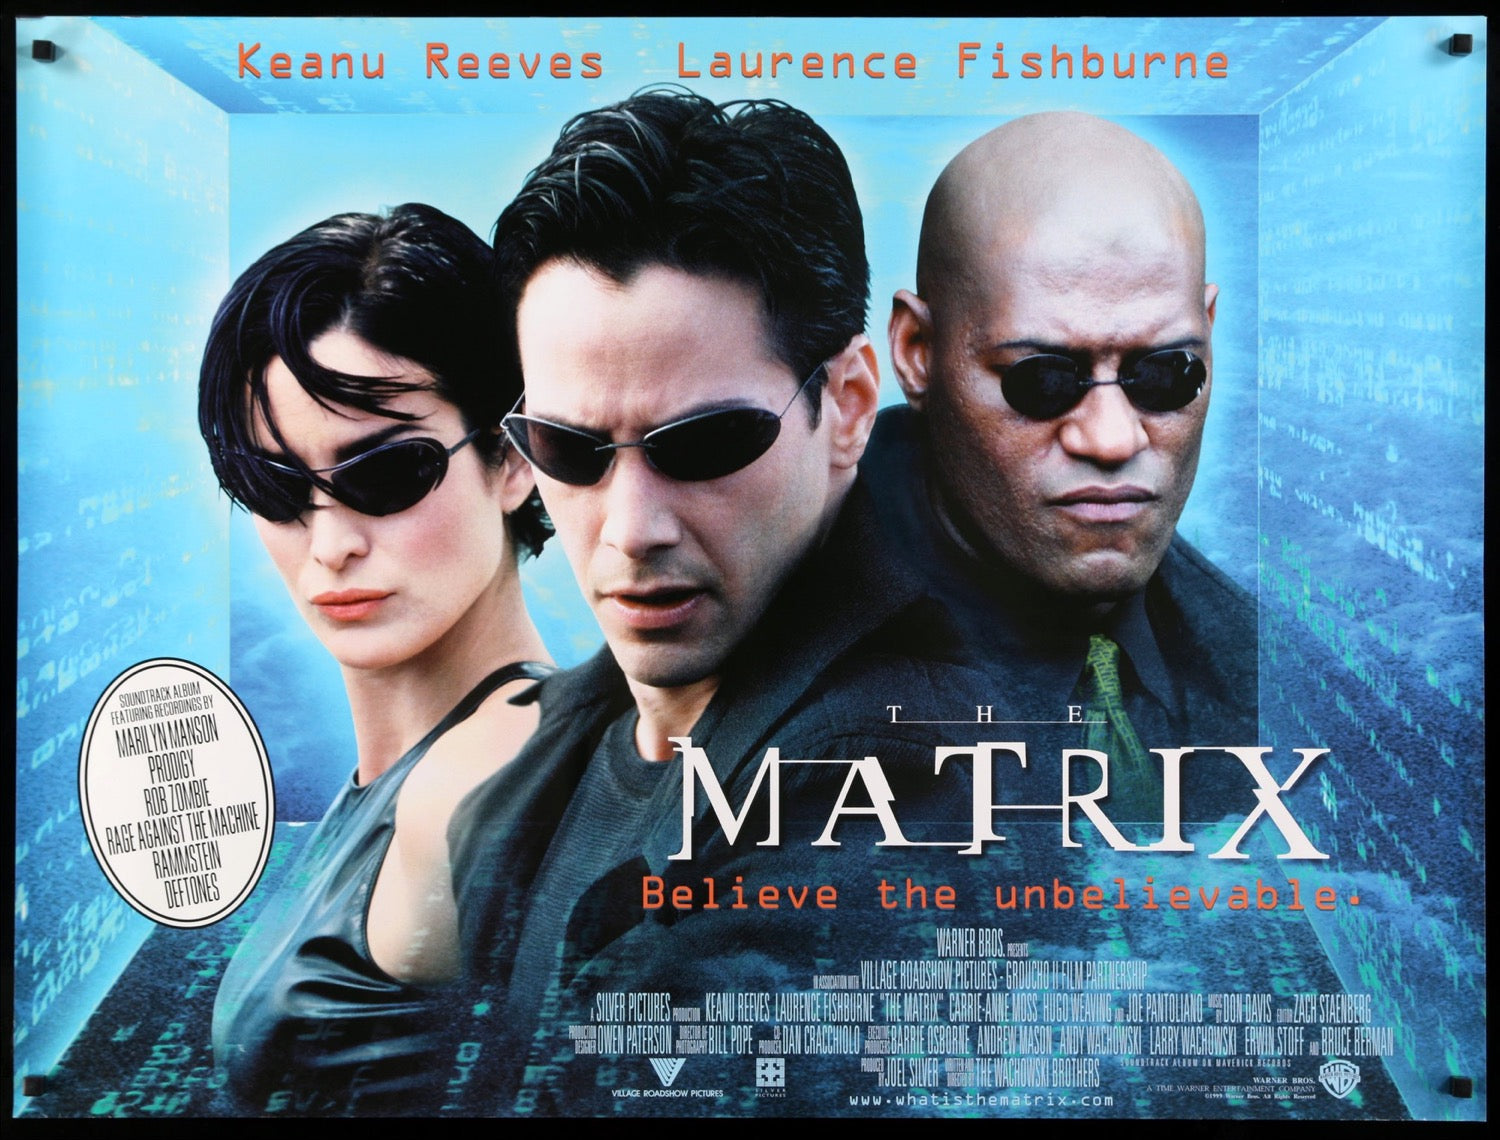 Movie Posters 1999: The Matrix (1999) Original British Quad Movie Poster